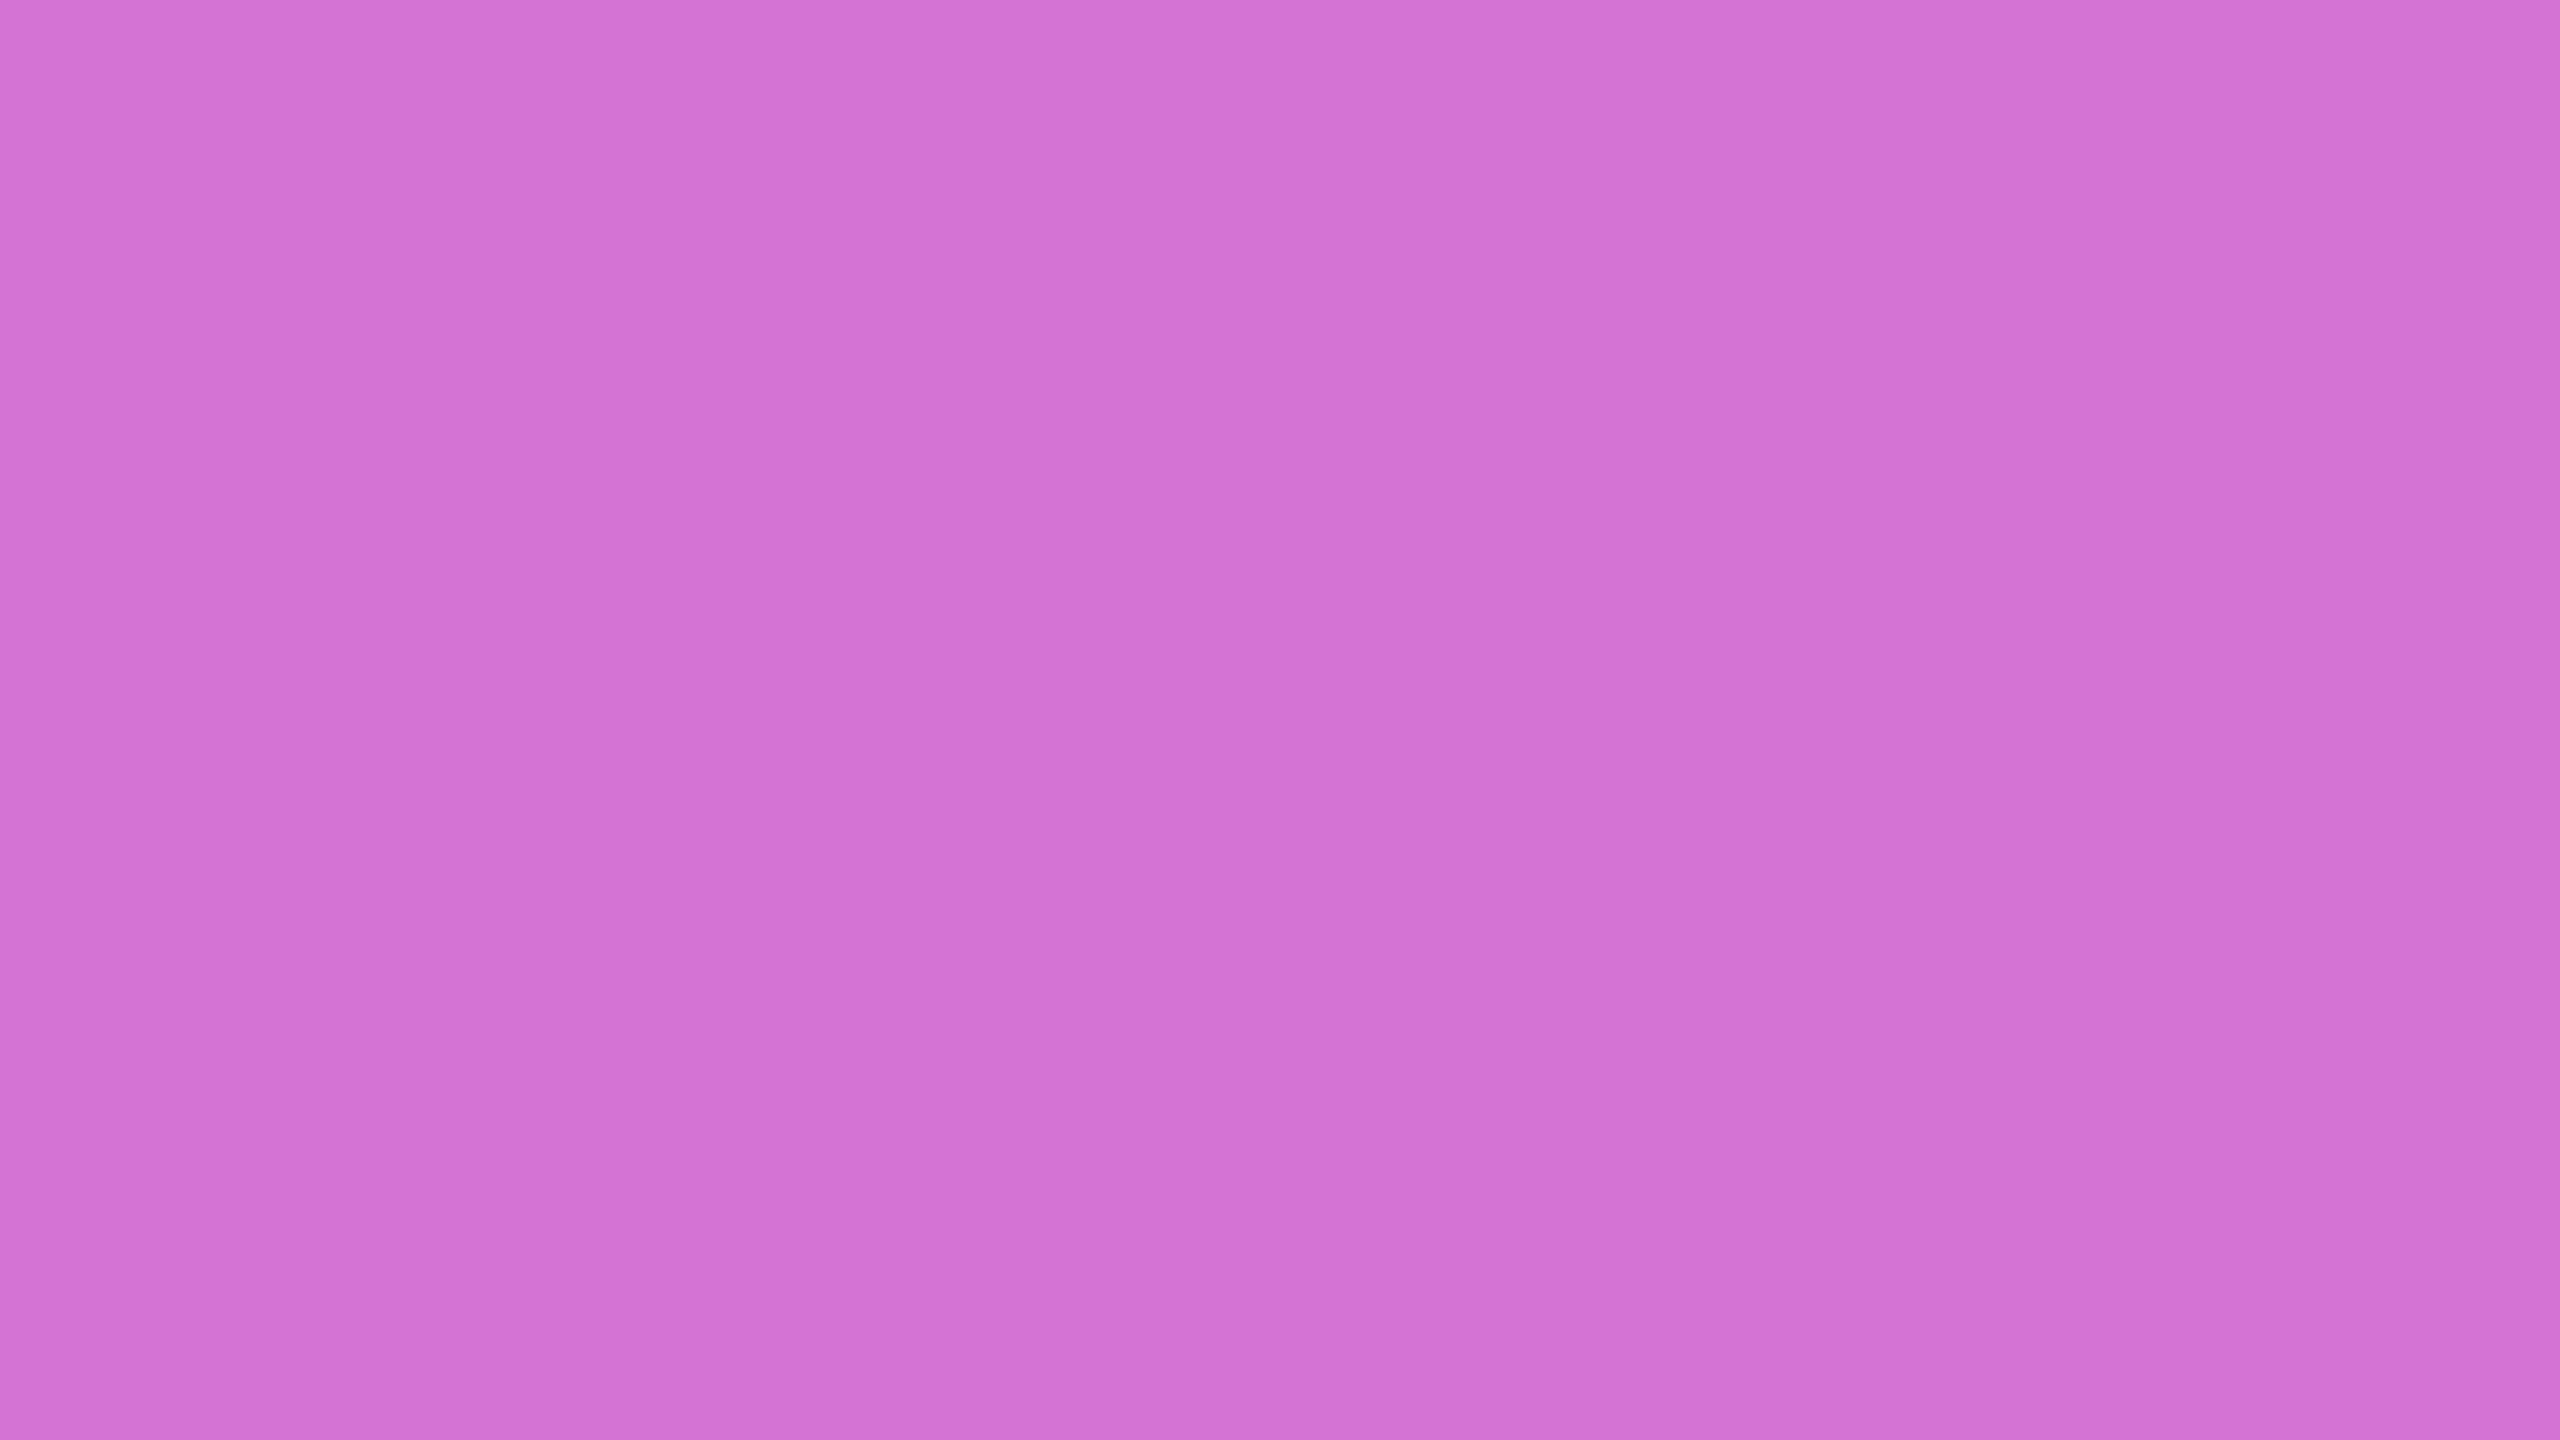 2560x1440 French Mauve Solid Color Background